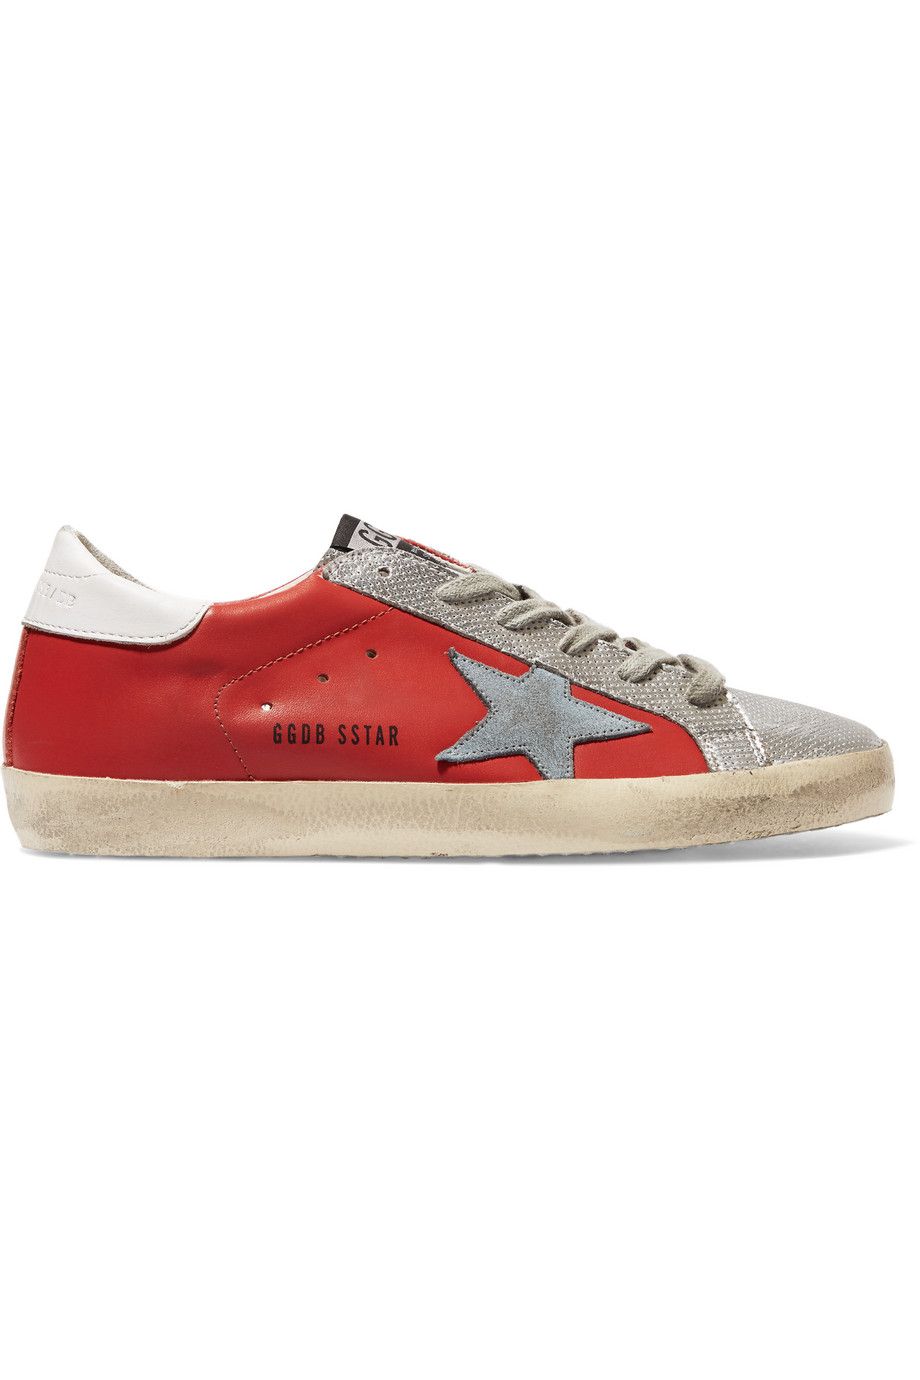 Super Star Metallic Distressed Leather Sneakers, Red/Silver, Women's US Size: 9.5, Size: 40